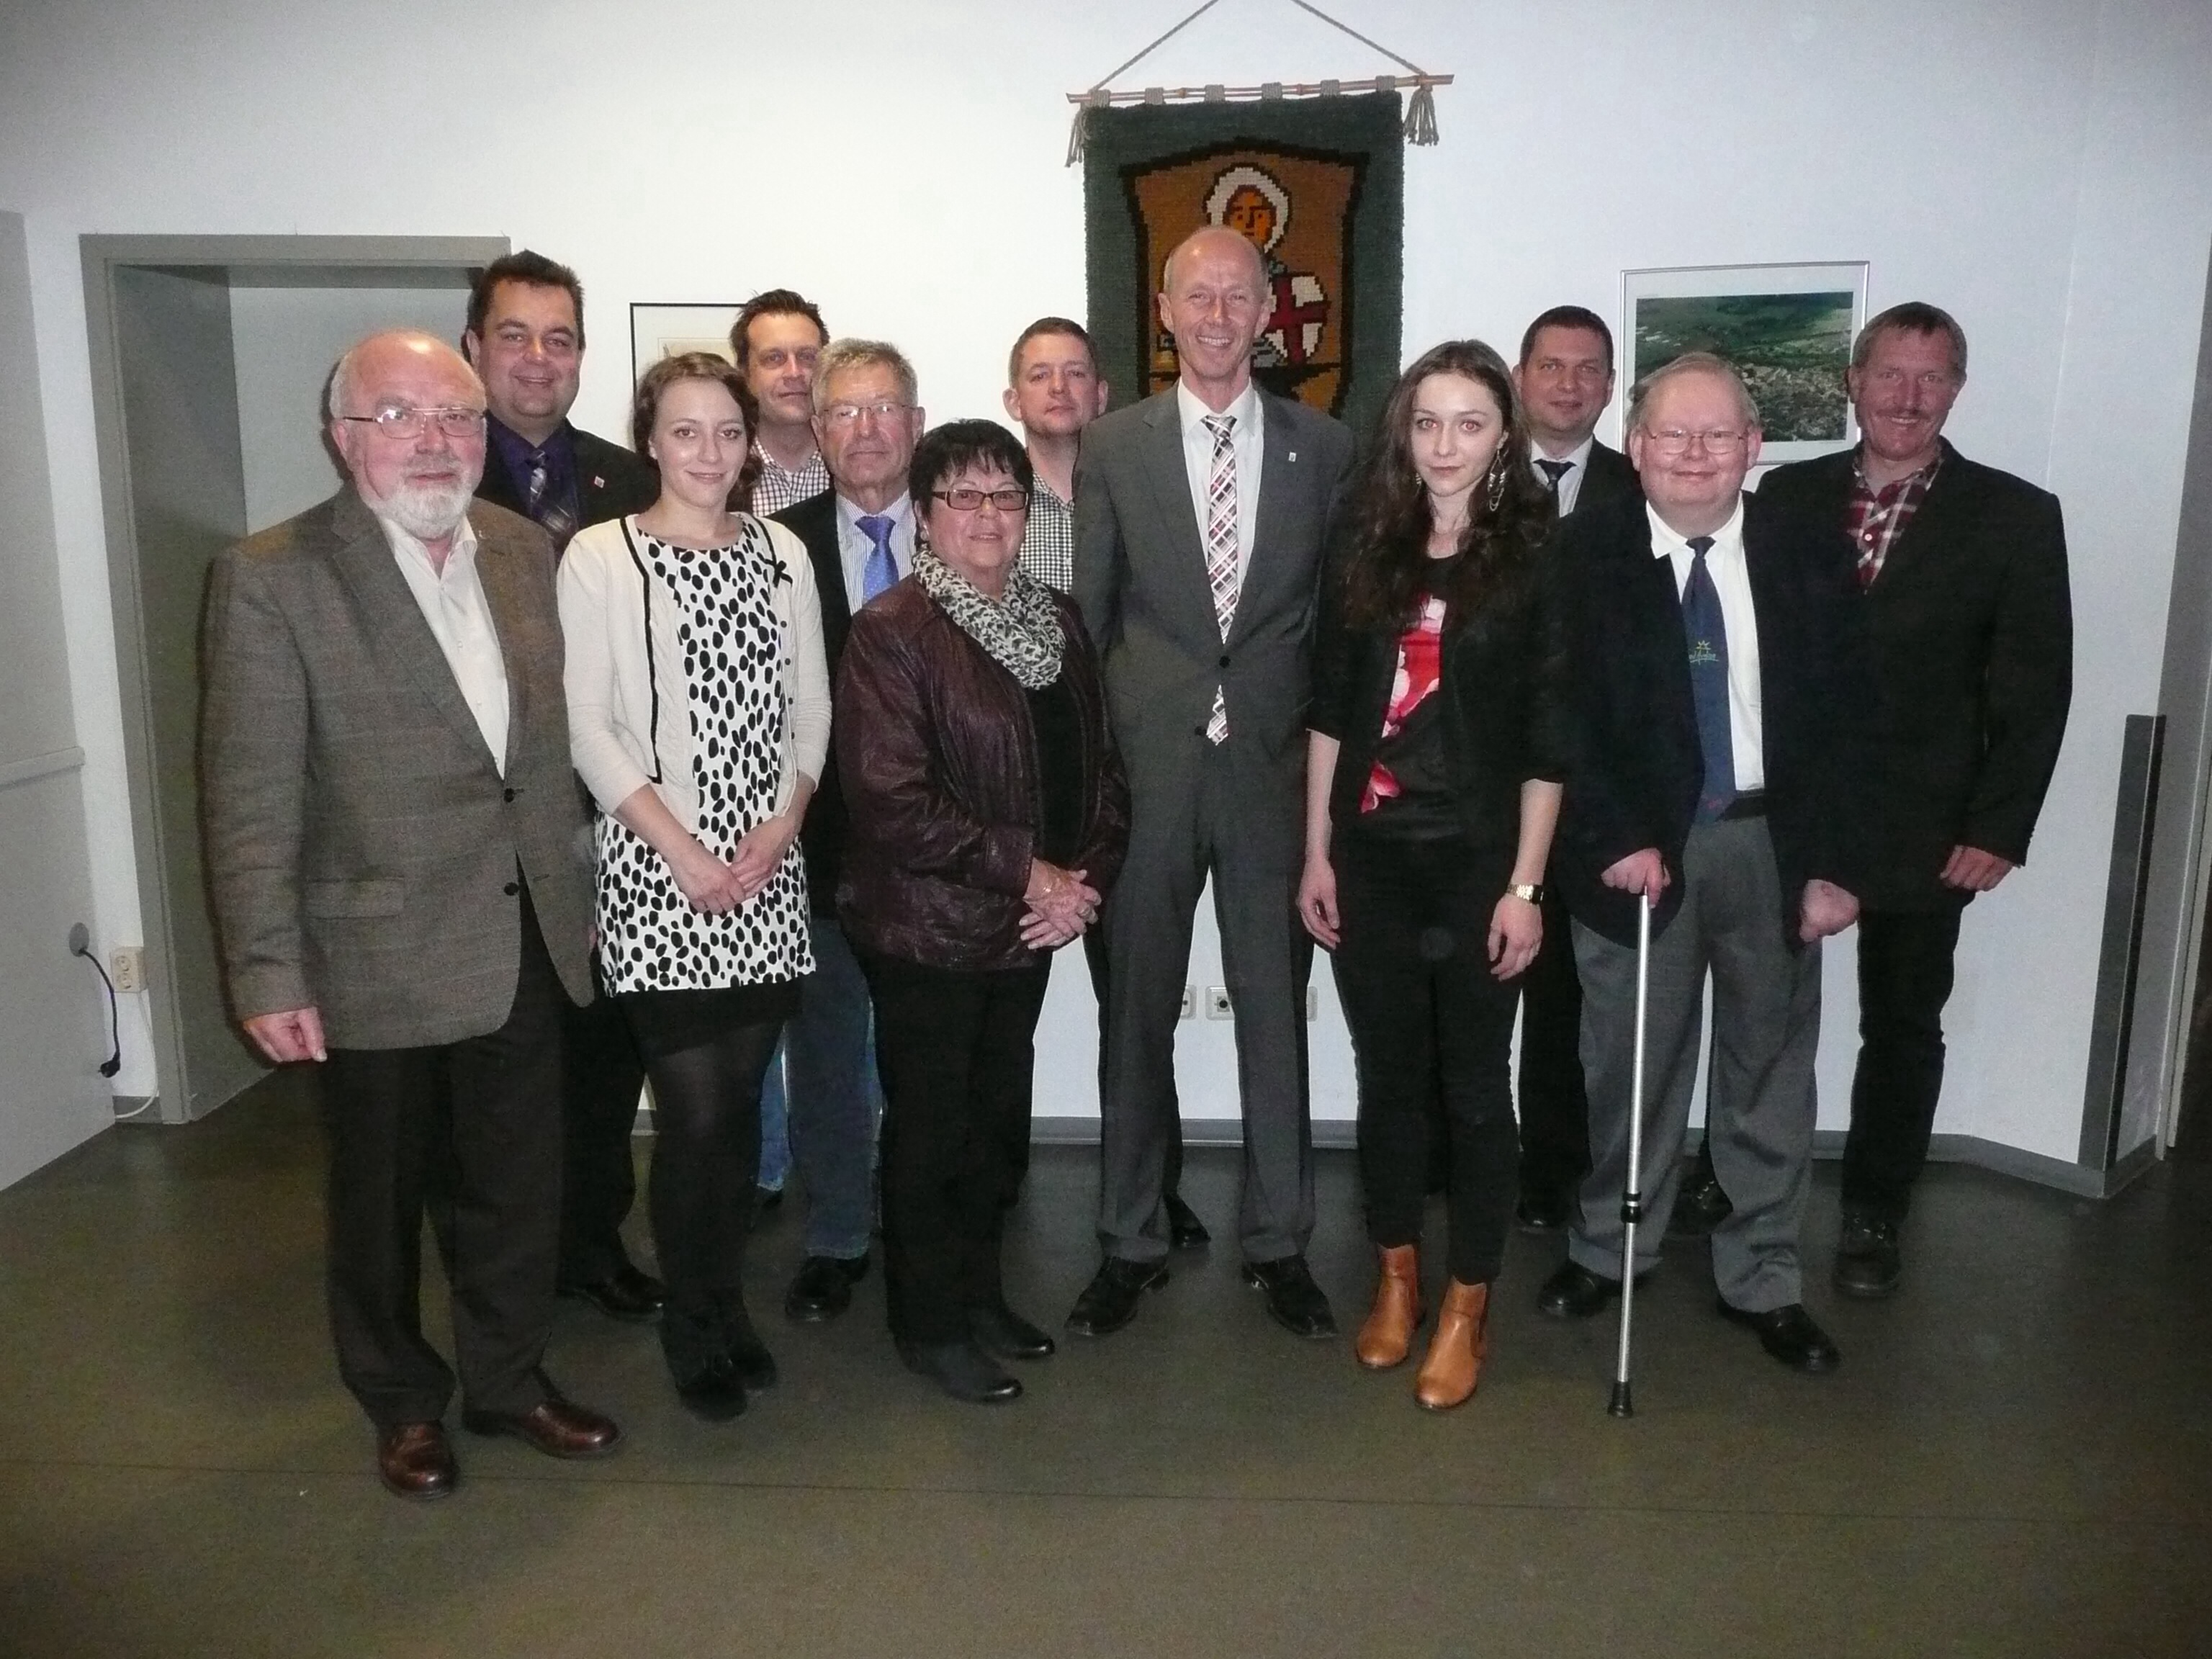 zum Foto (von links): Gottfried Birke, MdB Thomas Viesehon, Vanessa Becker, Guido Thoma, Hartmut Thier, Helga Brede, Marc van Biene, MdL Armin Schwarz, Sophia Becker, Stadtverordnetenvorsteher Marko Lambion, Andreas Brand, Fraktionsvorsitzender Gerd Frese